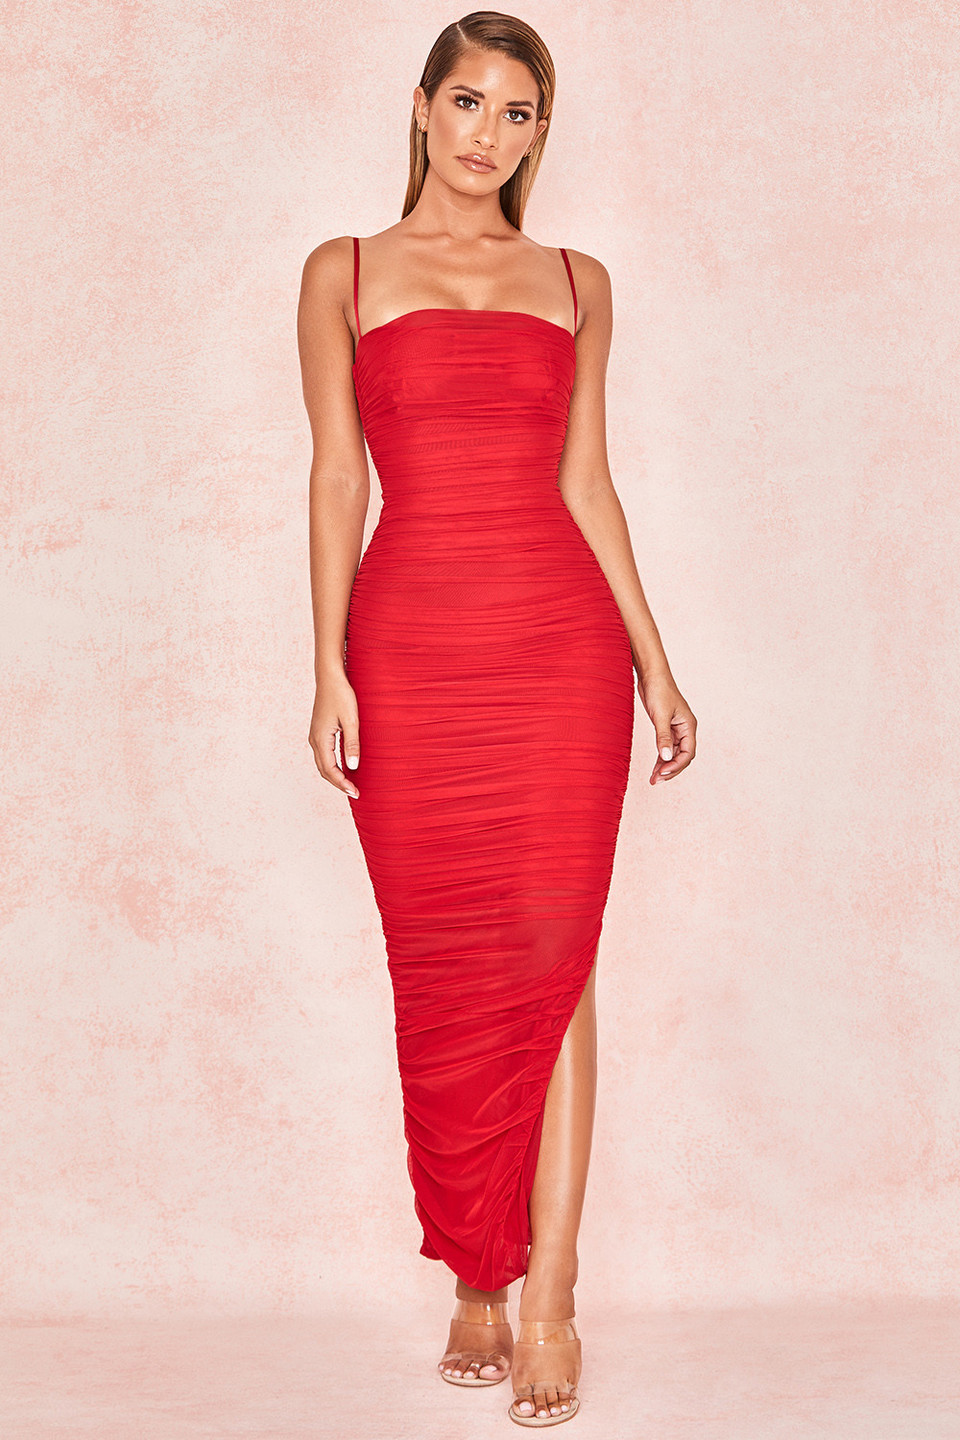 Fornarina Red Organza Mesh Maxi Dress